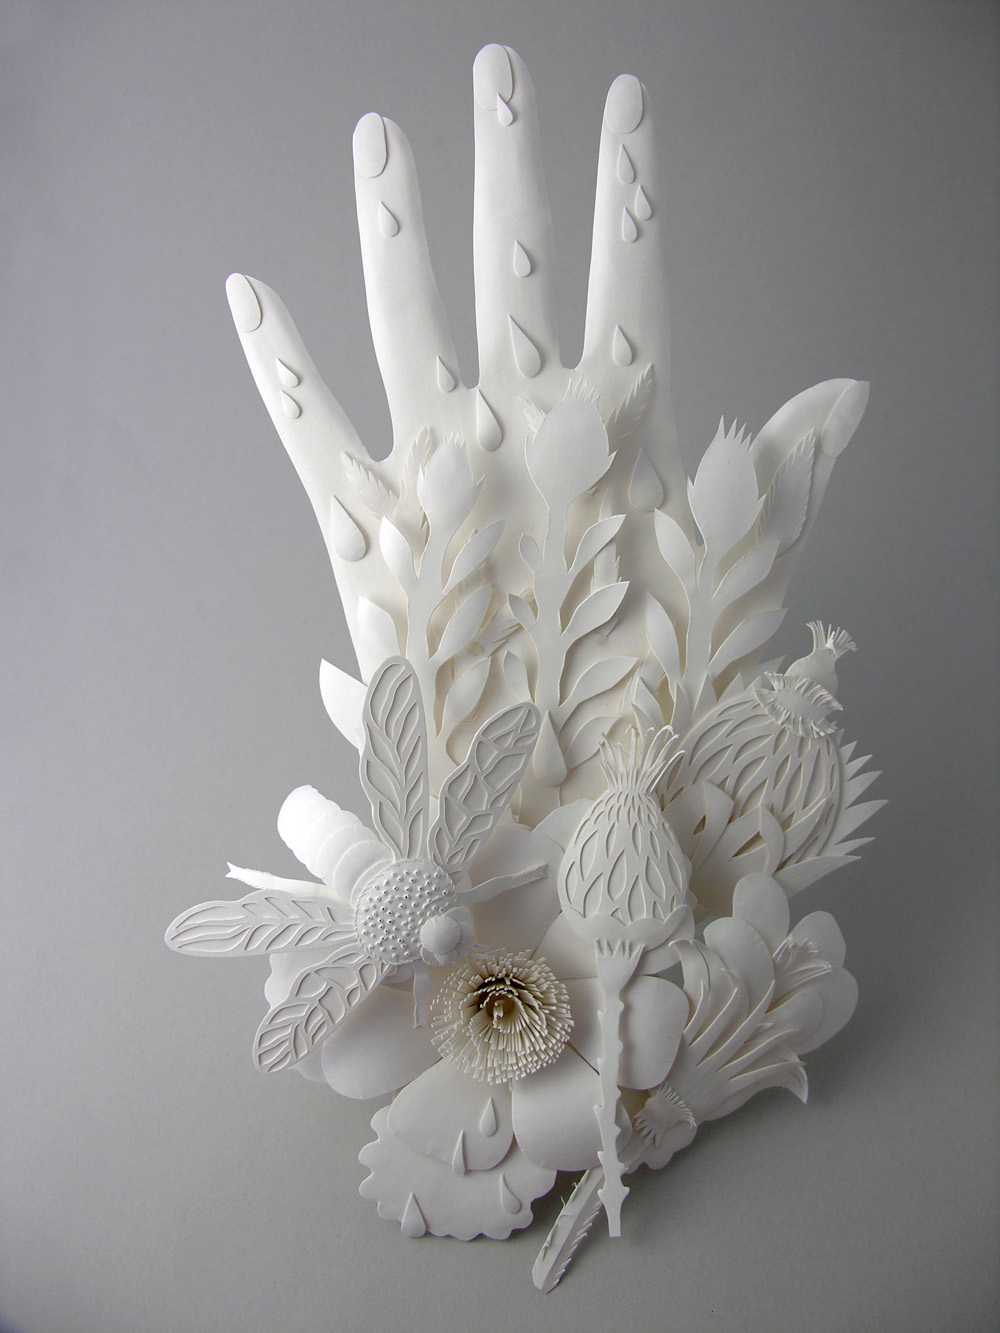 Hand. Paper sculpture by Elsa Mora